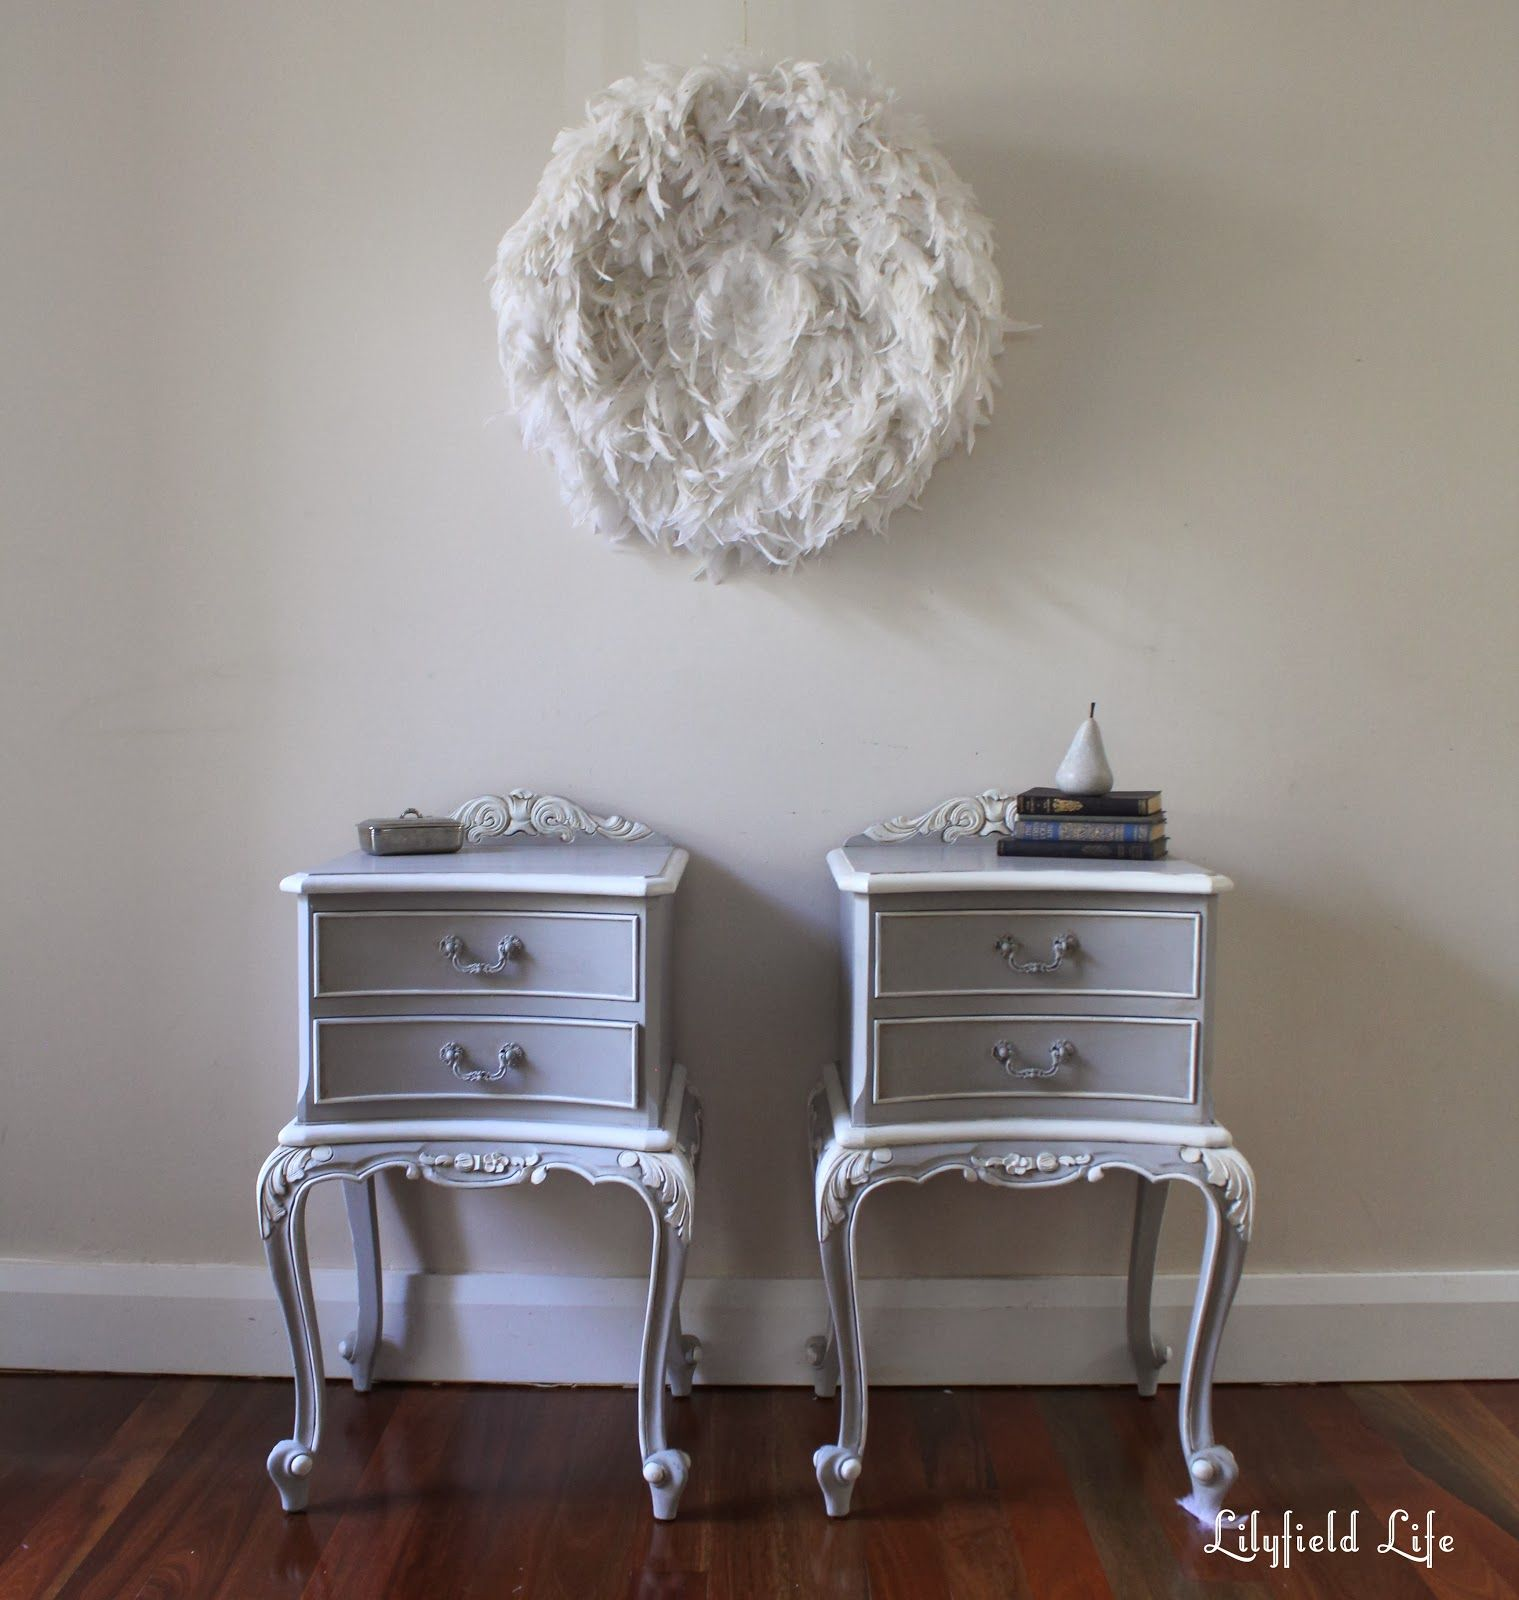 Painting ornate details antique french bedside tables ideas for antique french bedside tables painted by lilyfield life and my tips on painting ornate details ascp parisgrey white paint watchthetrailerfo